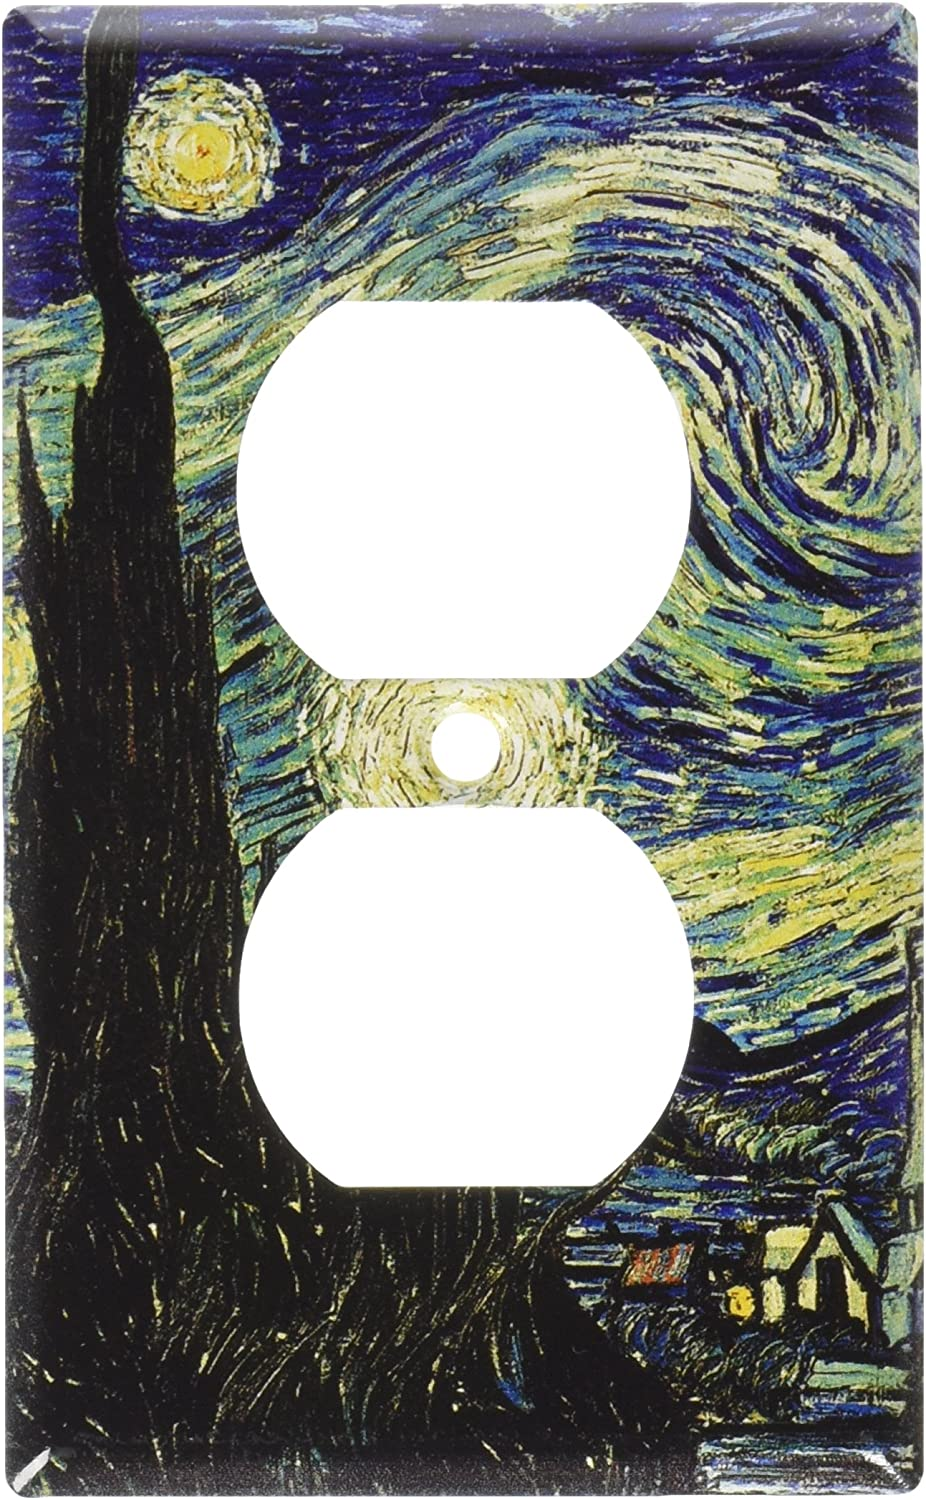 Art Plates - Van Gogh: Starry Night Switch Plate - Outlet Cover